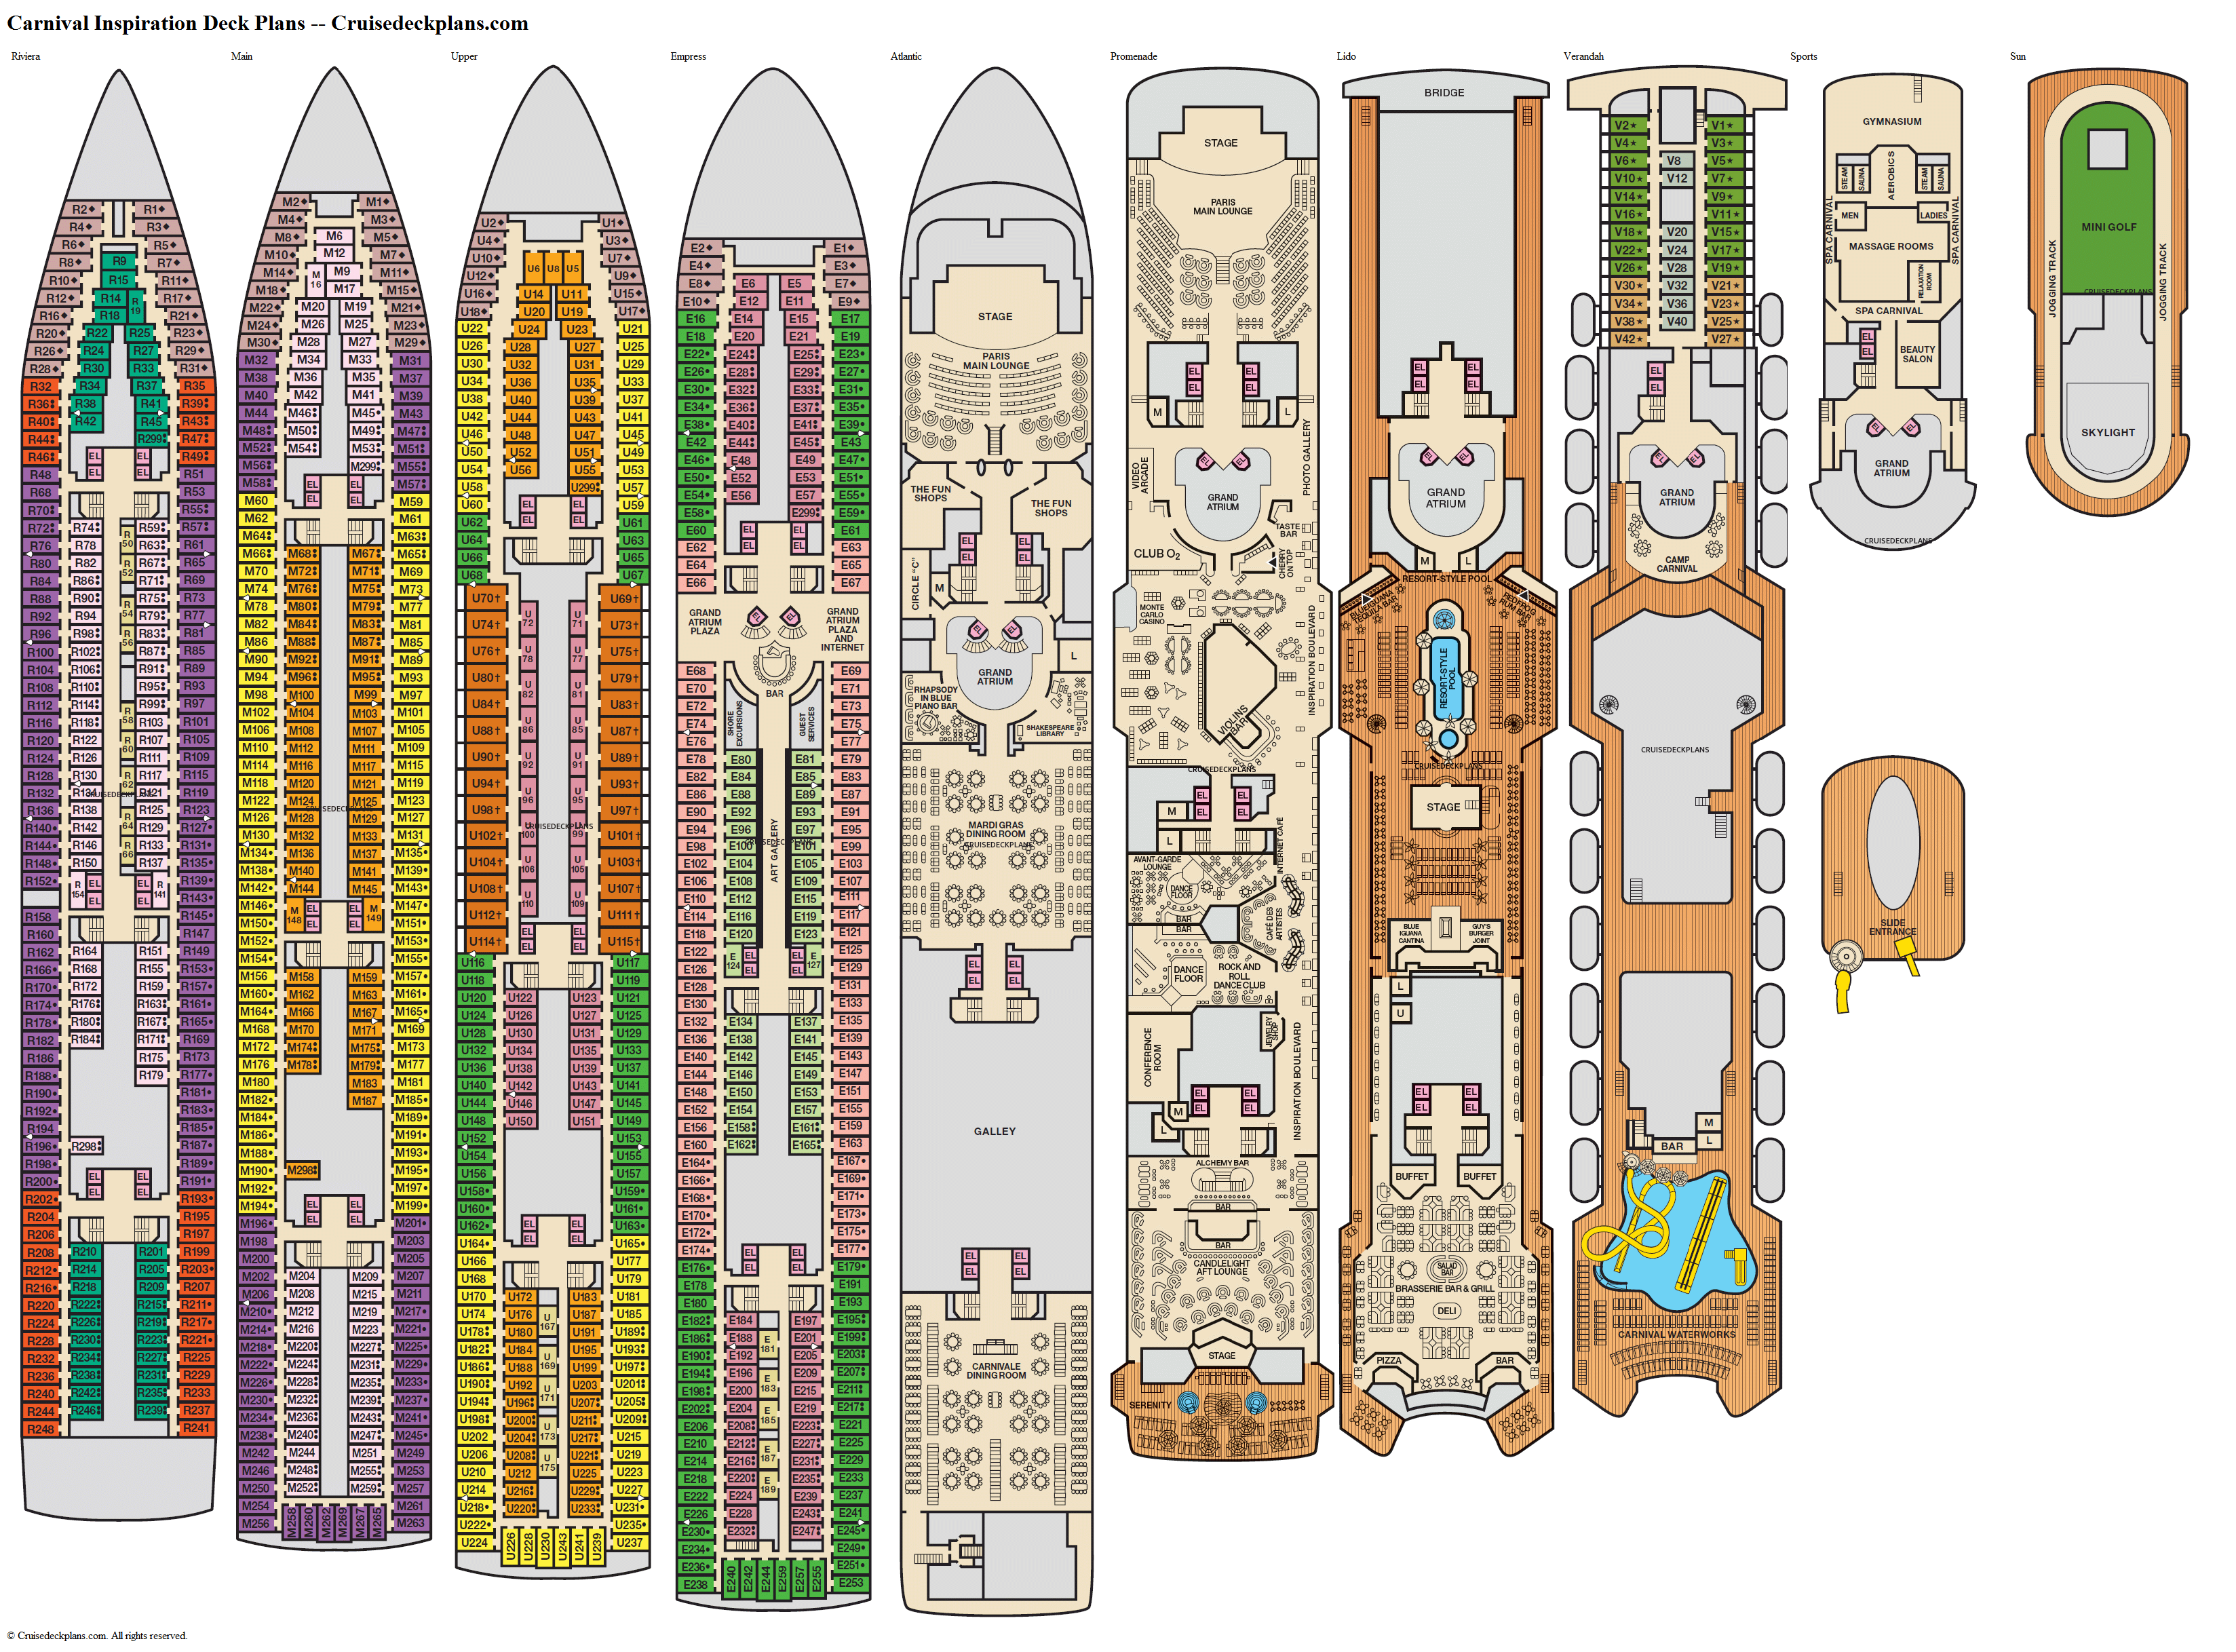 Carnival Inspiration deck plans image